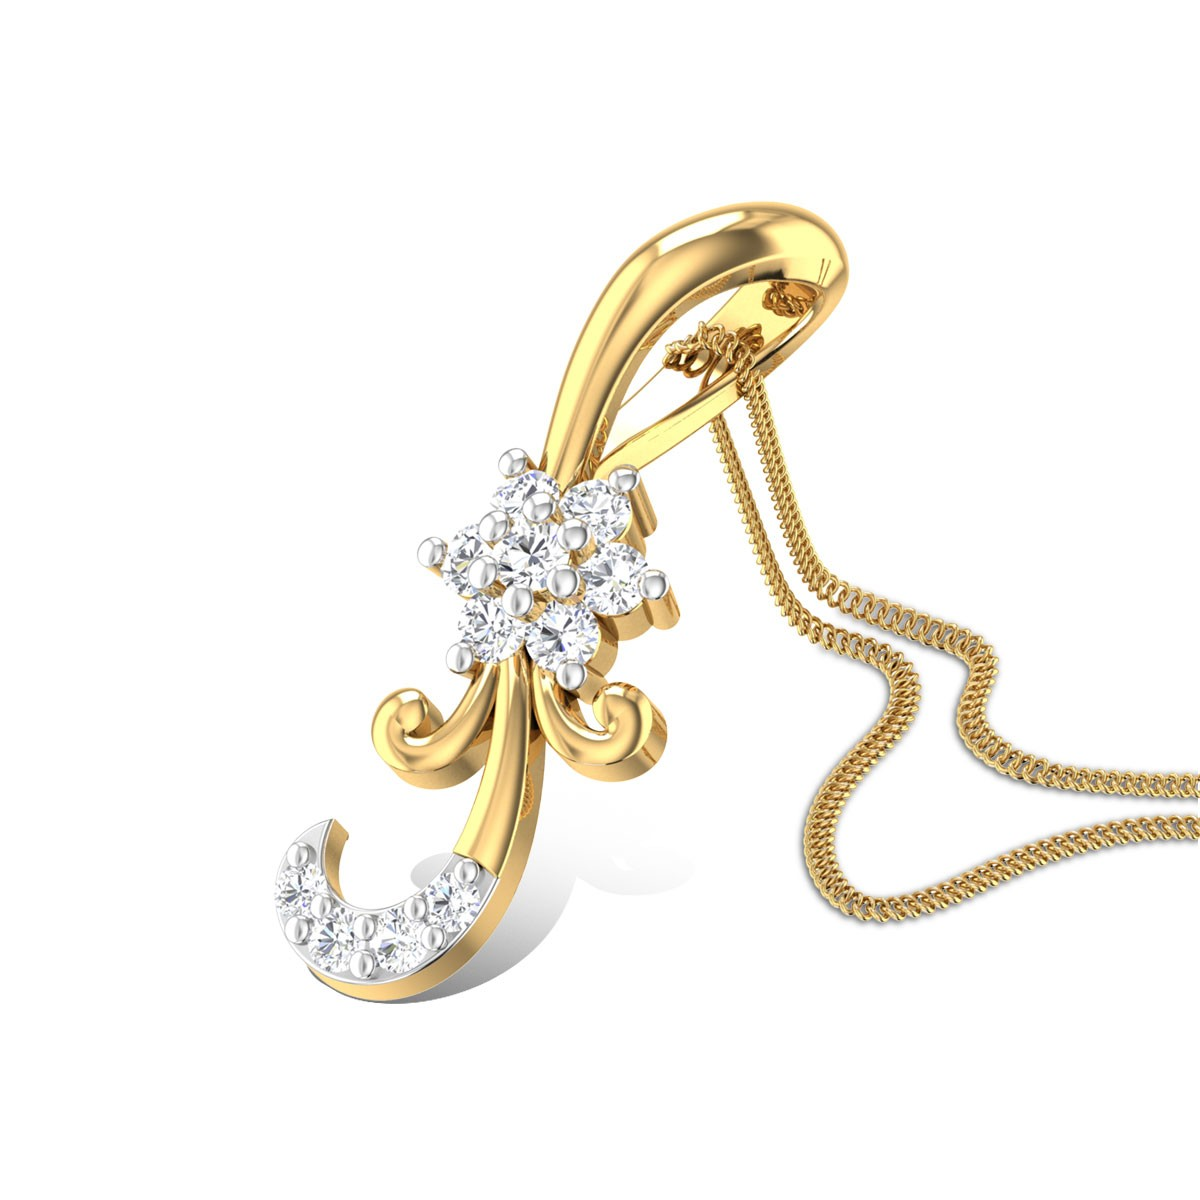 Goldenfleece Diamond Pendant